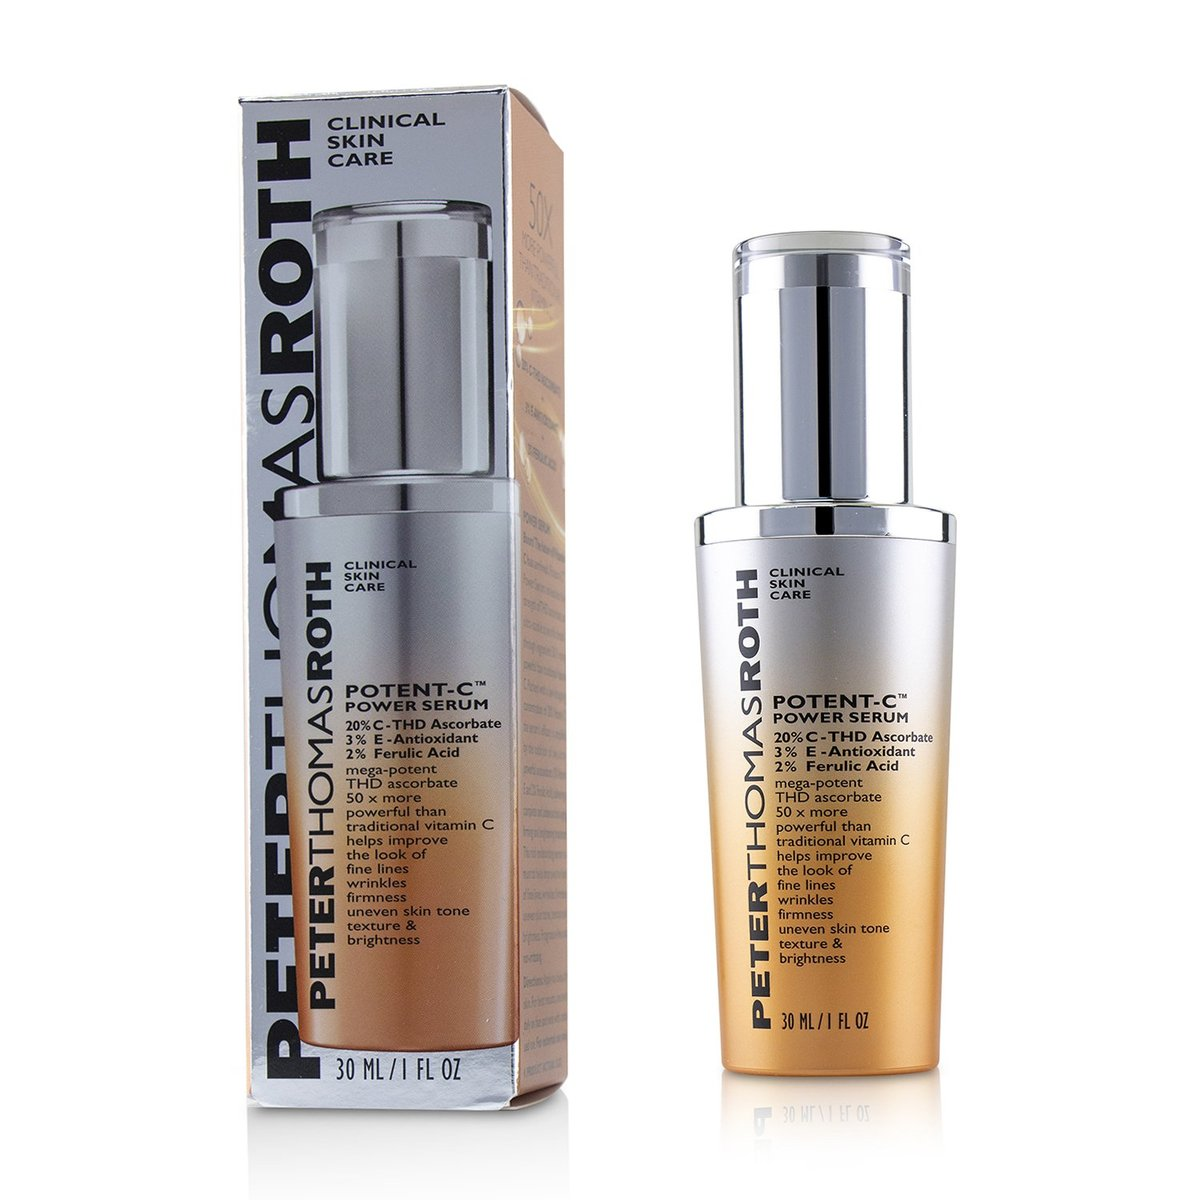 Potent-C Power Serum